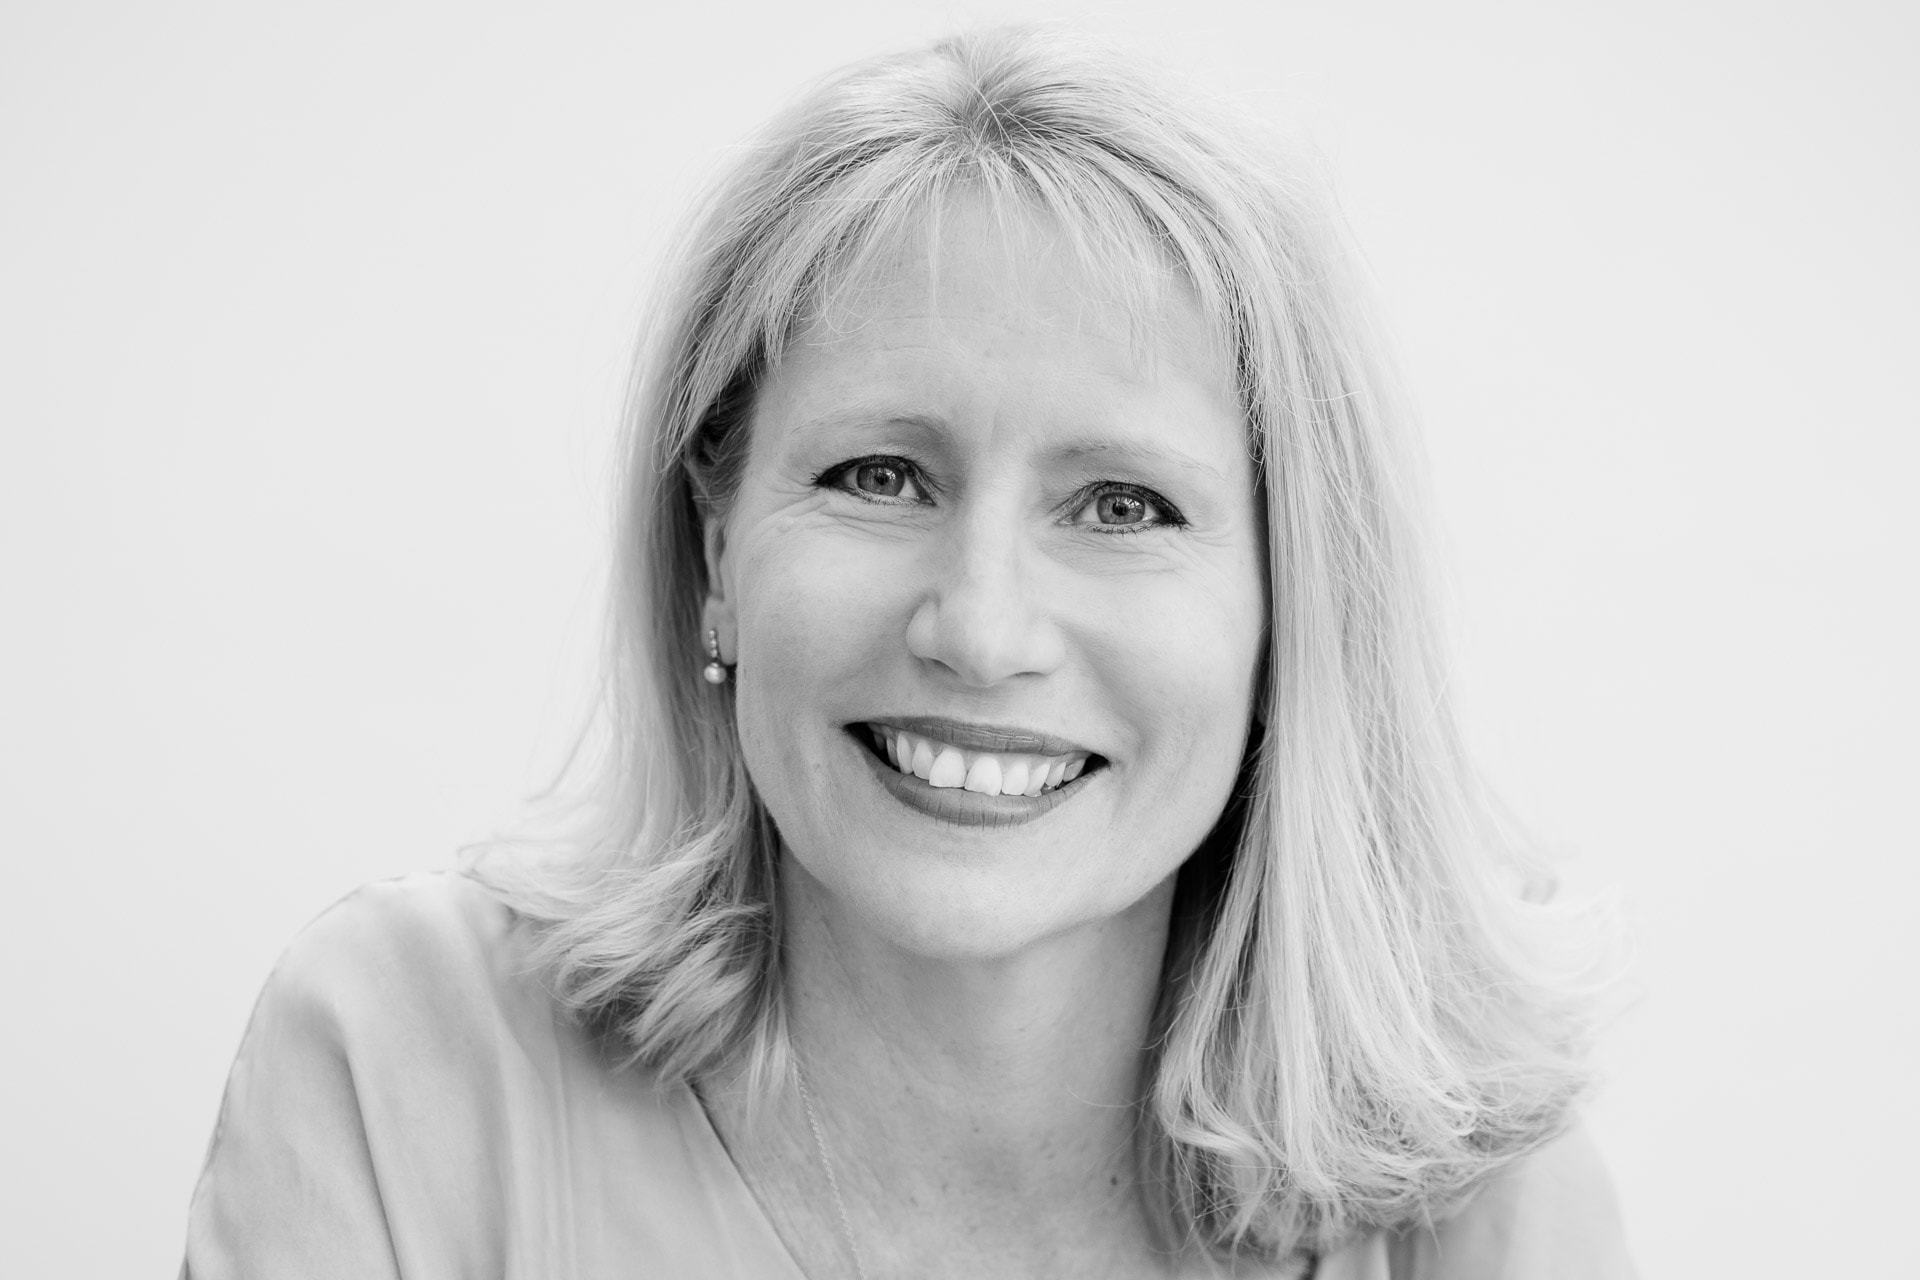 relaxed and natural, black and white business headshot of a woman smiling at the camera